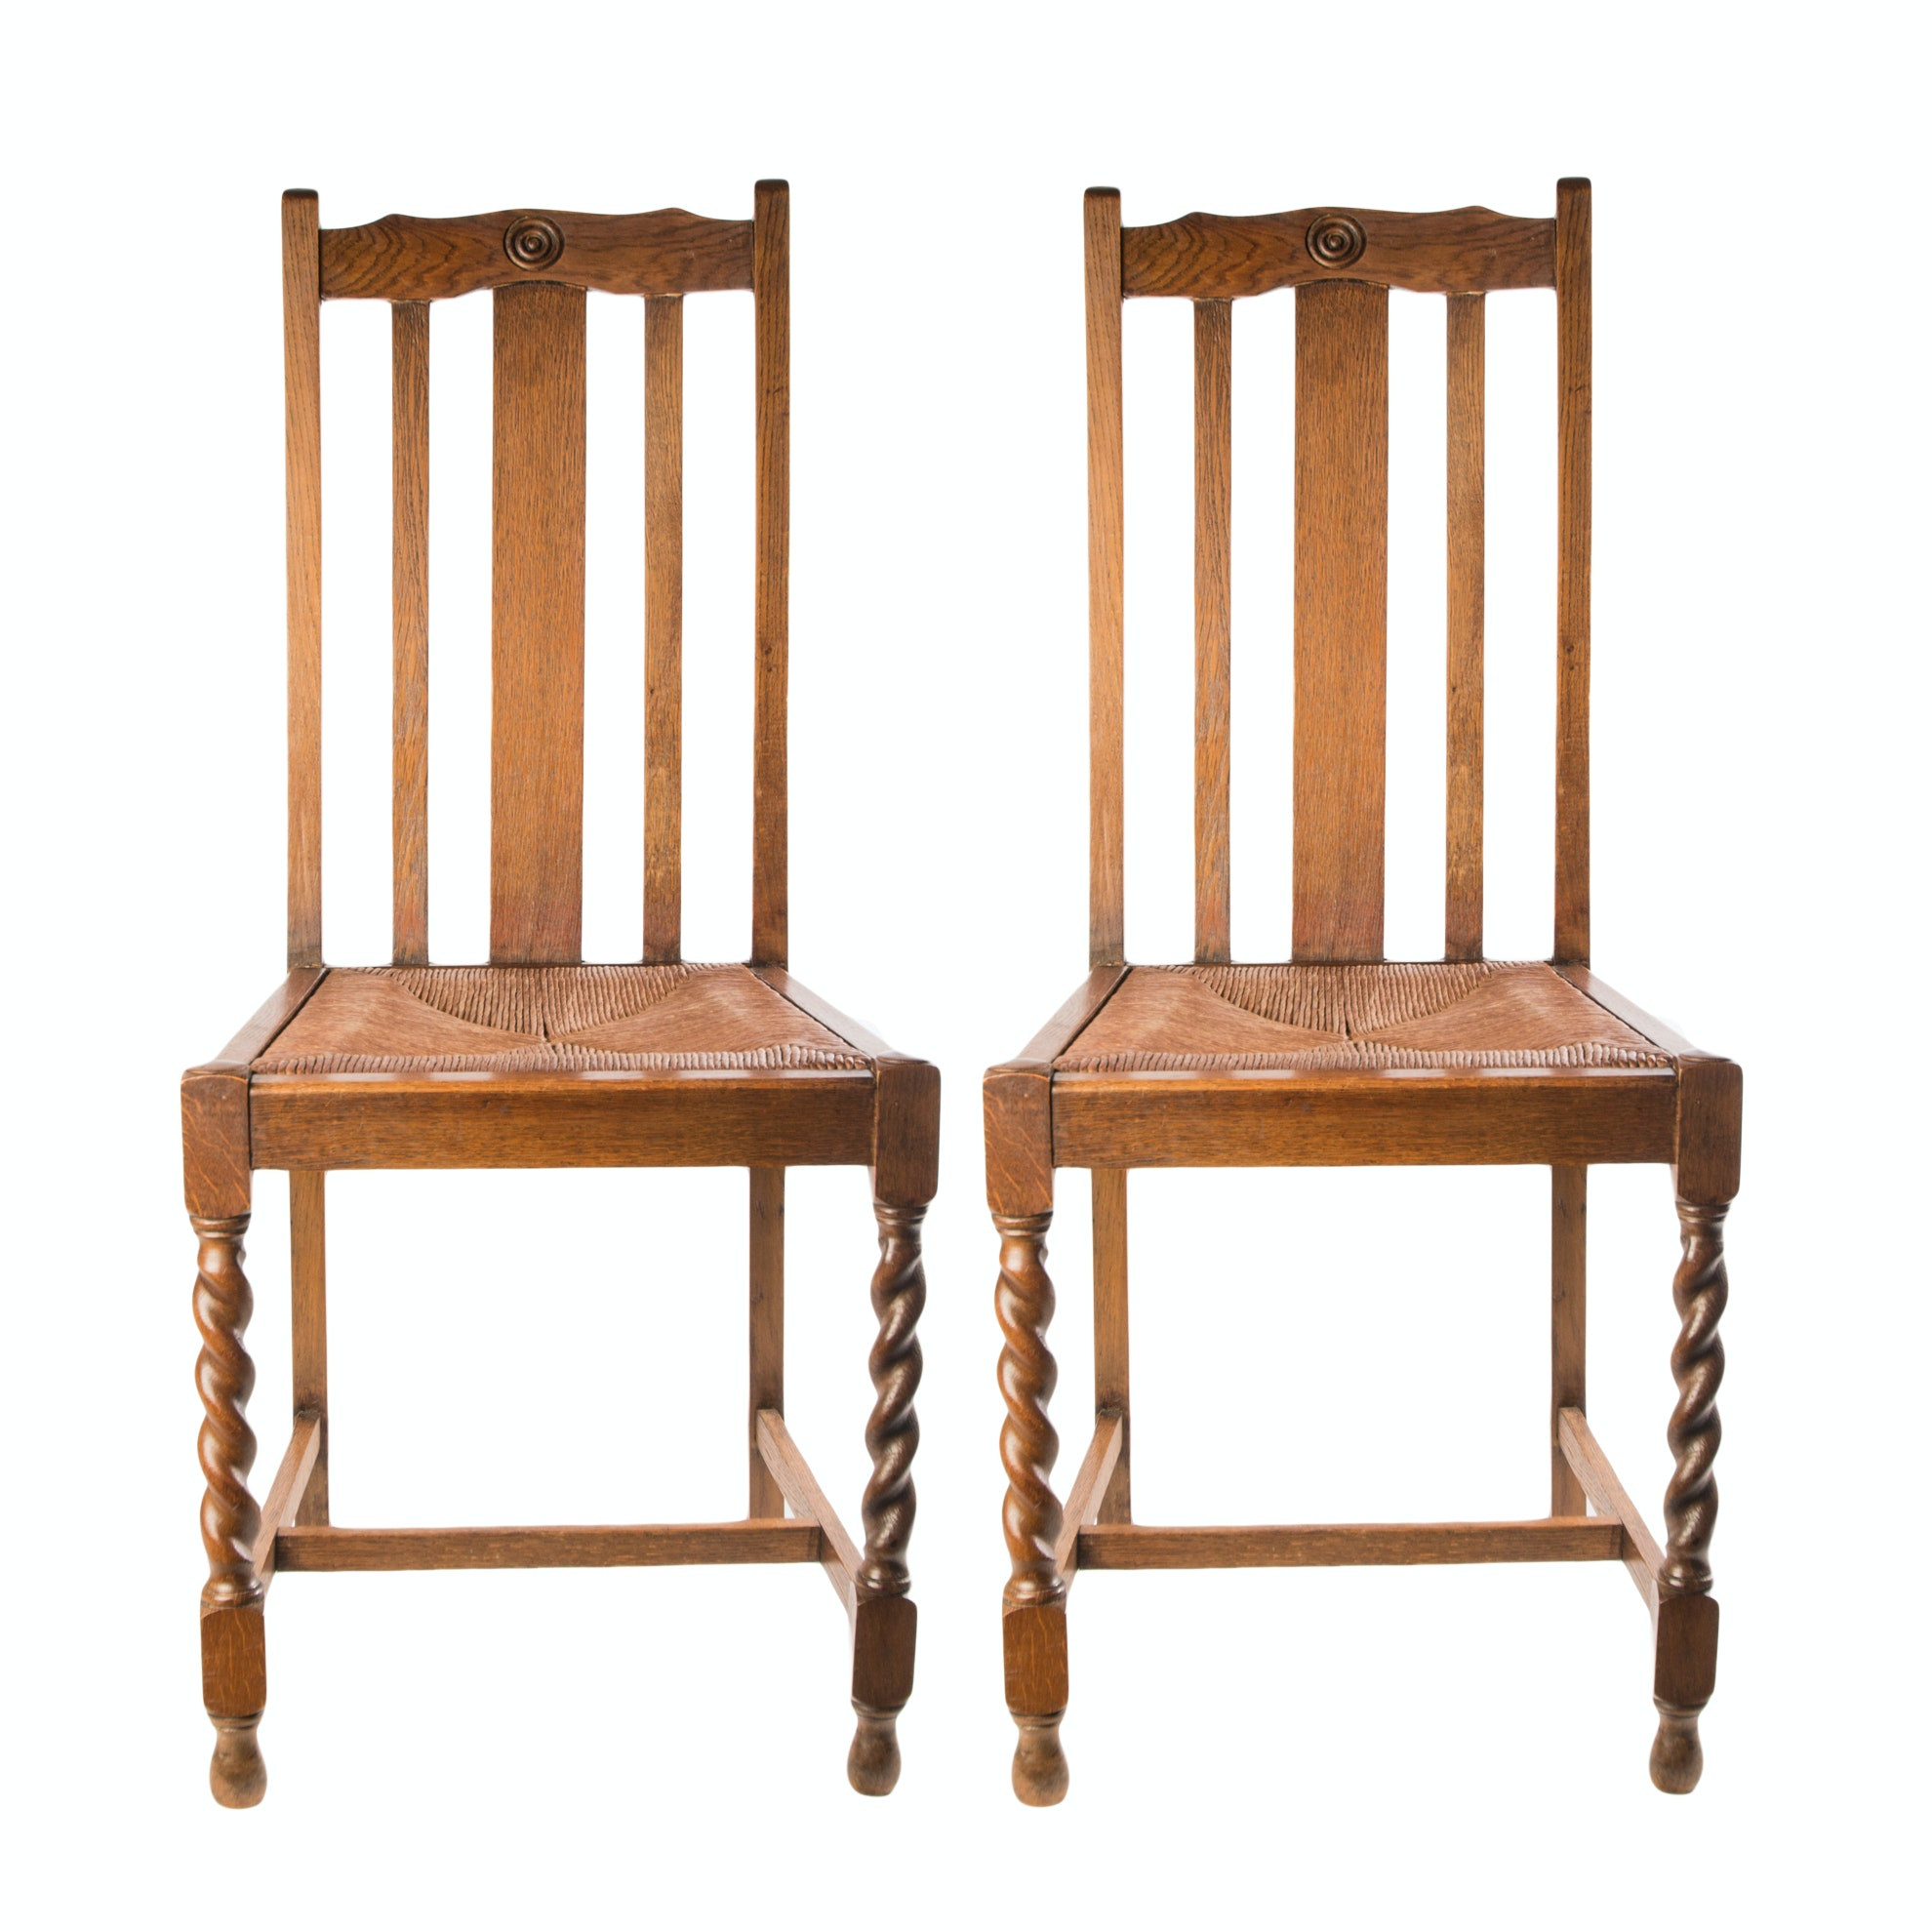 English Barley Twist Chairs